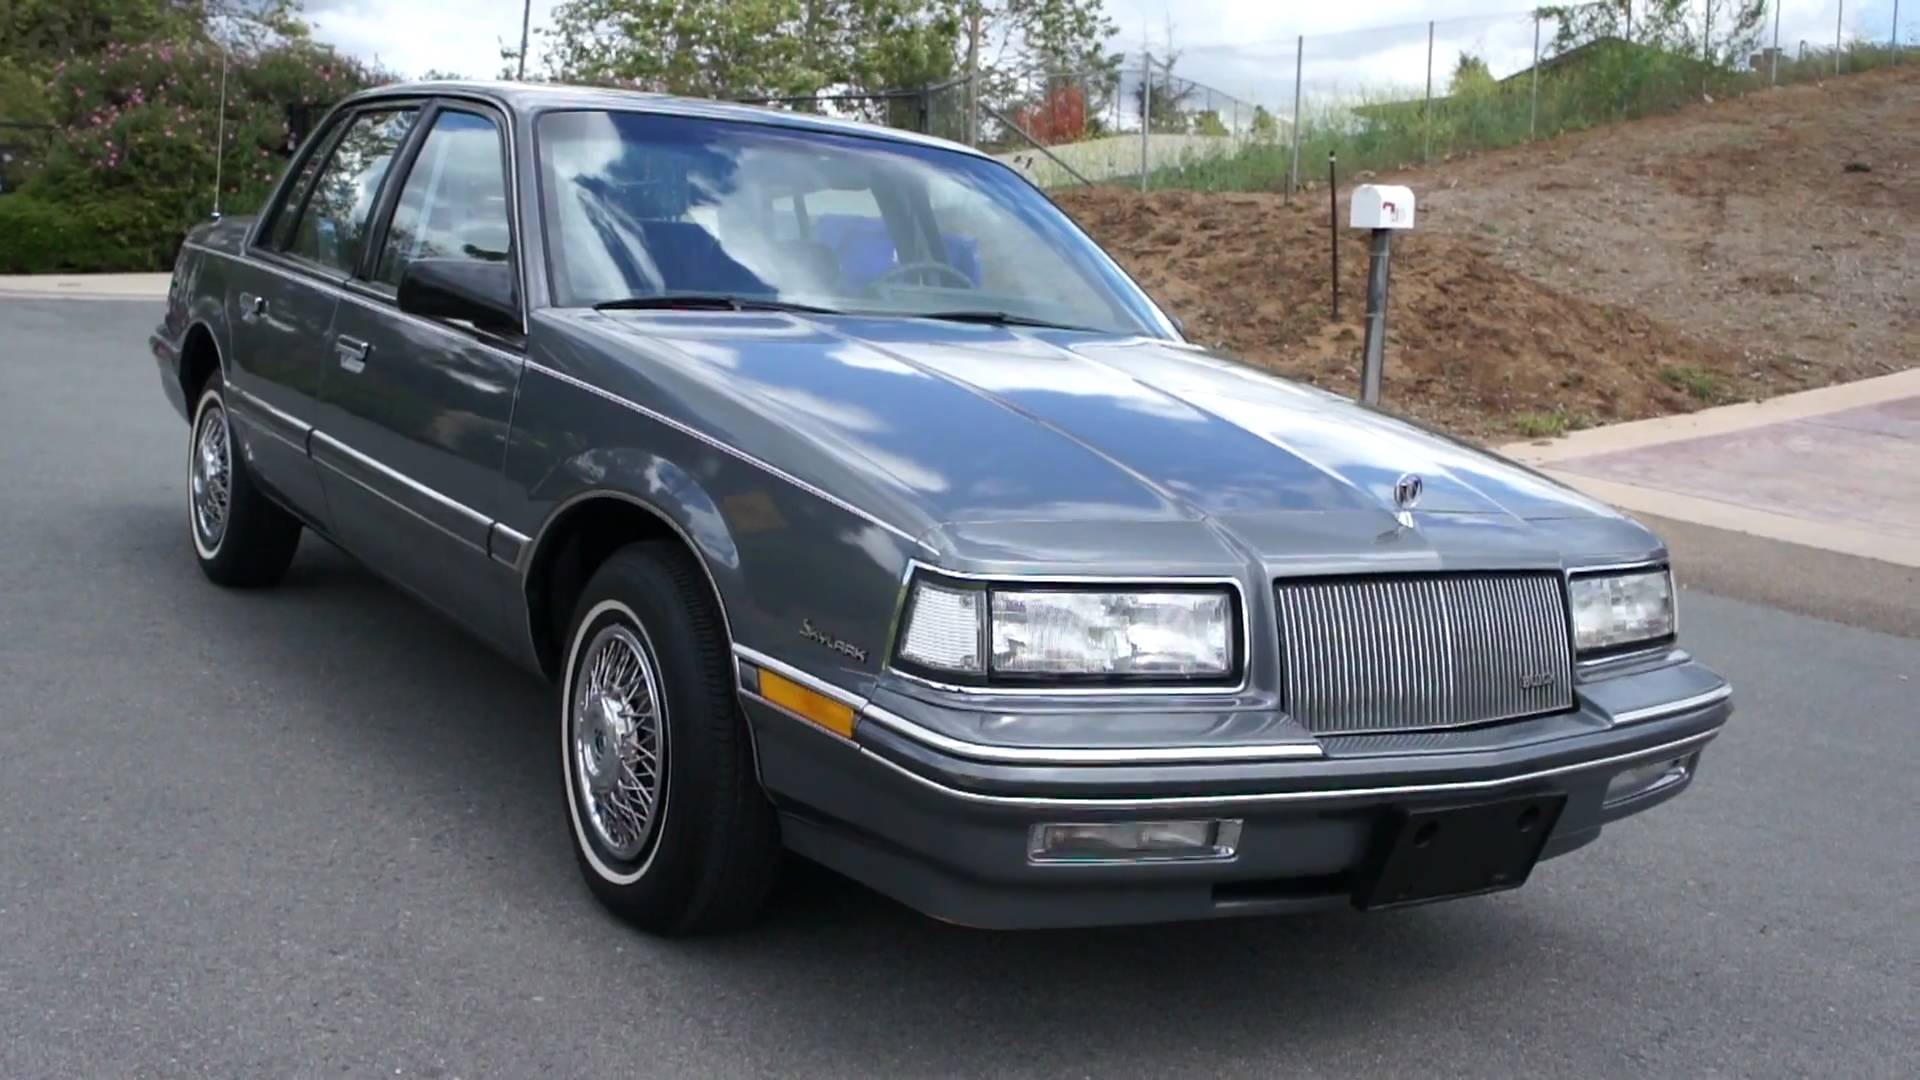 1991 chevrolet caprice classic the drive s curbside classic 1991 chevrolet caprice classic the